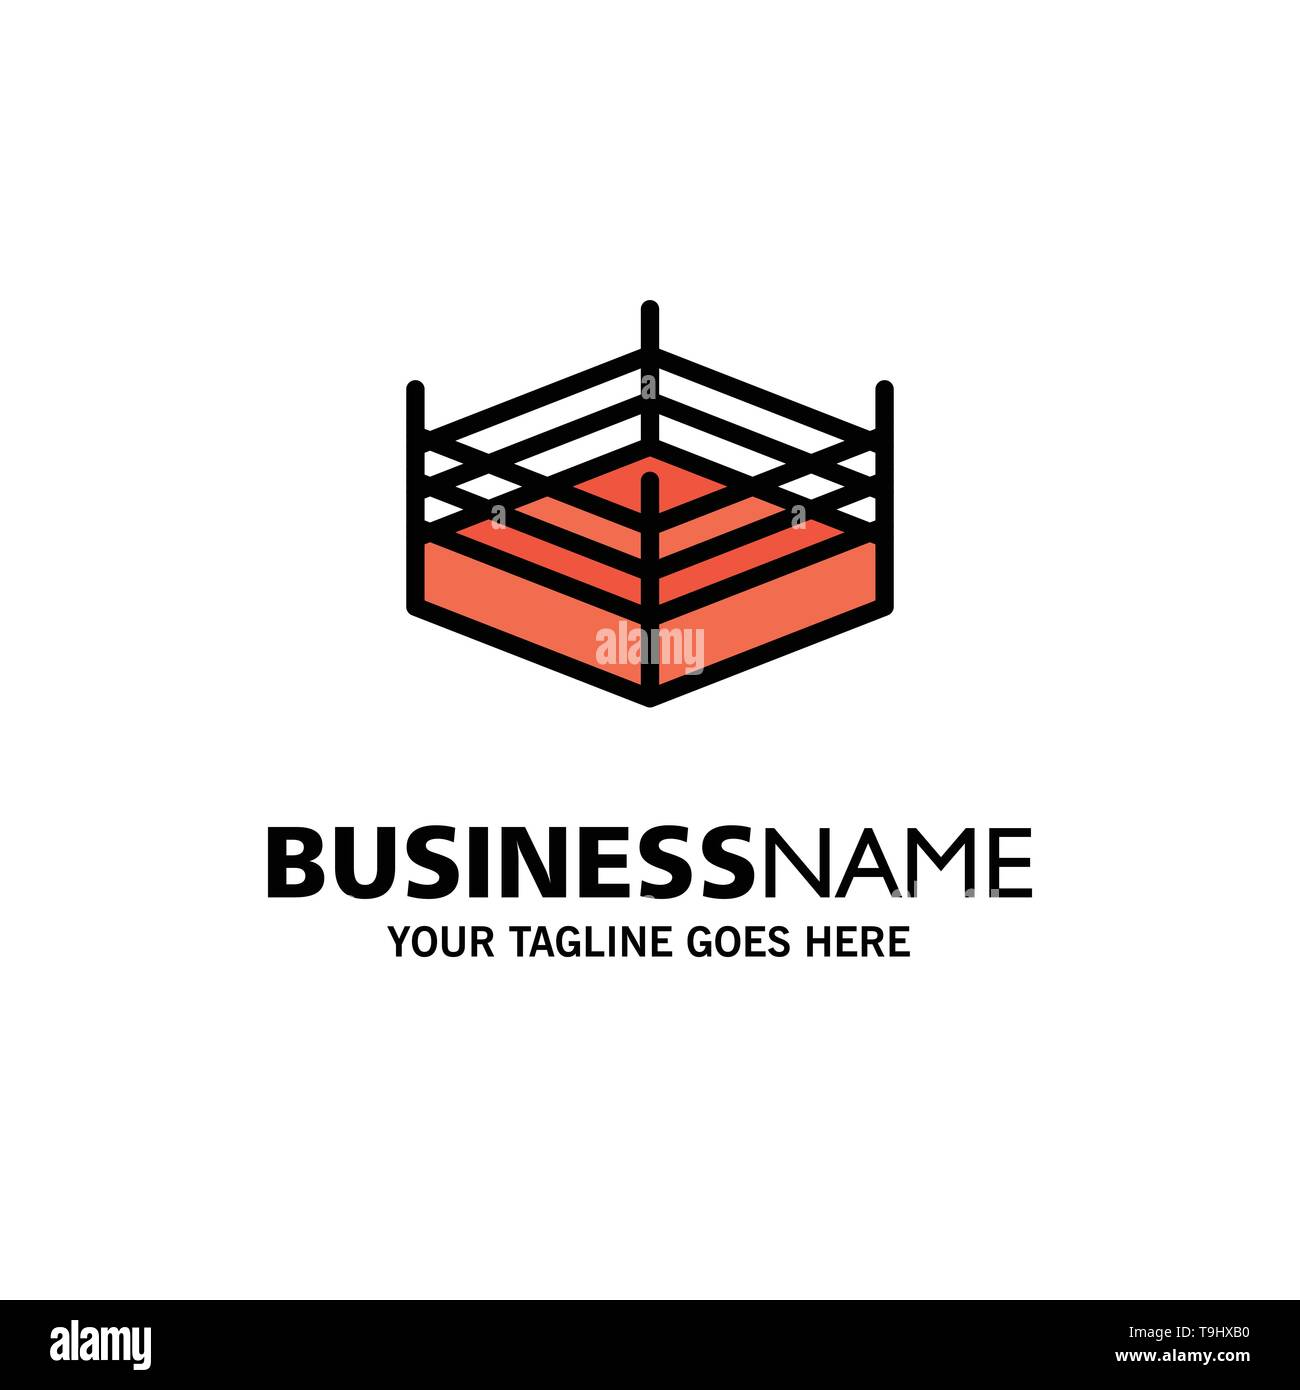 Boxing, Ring, Wrestling Business Logo Template. Flat Color - Stock Image